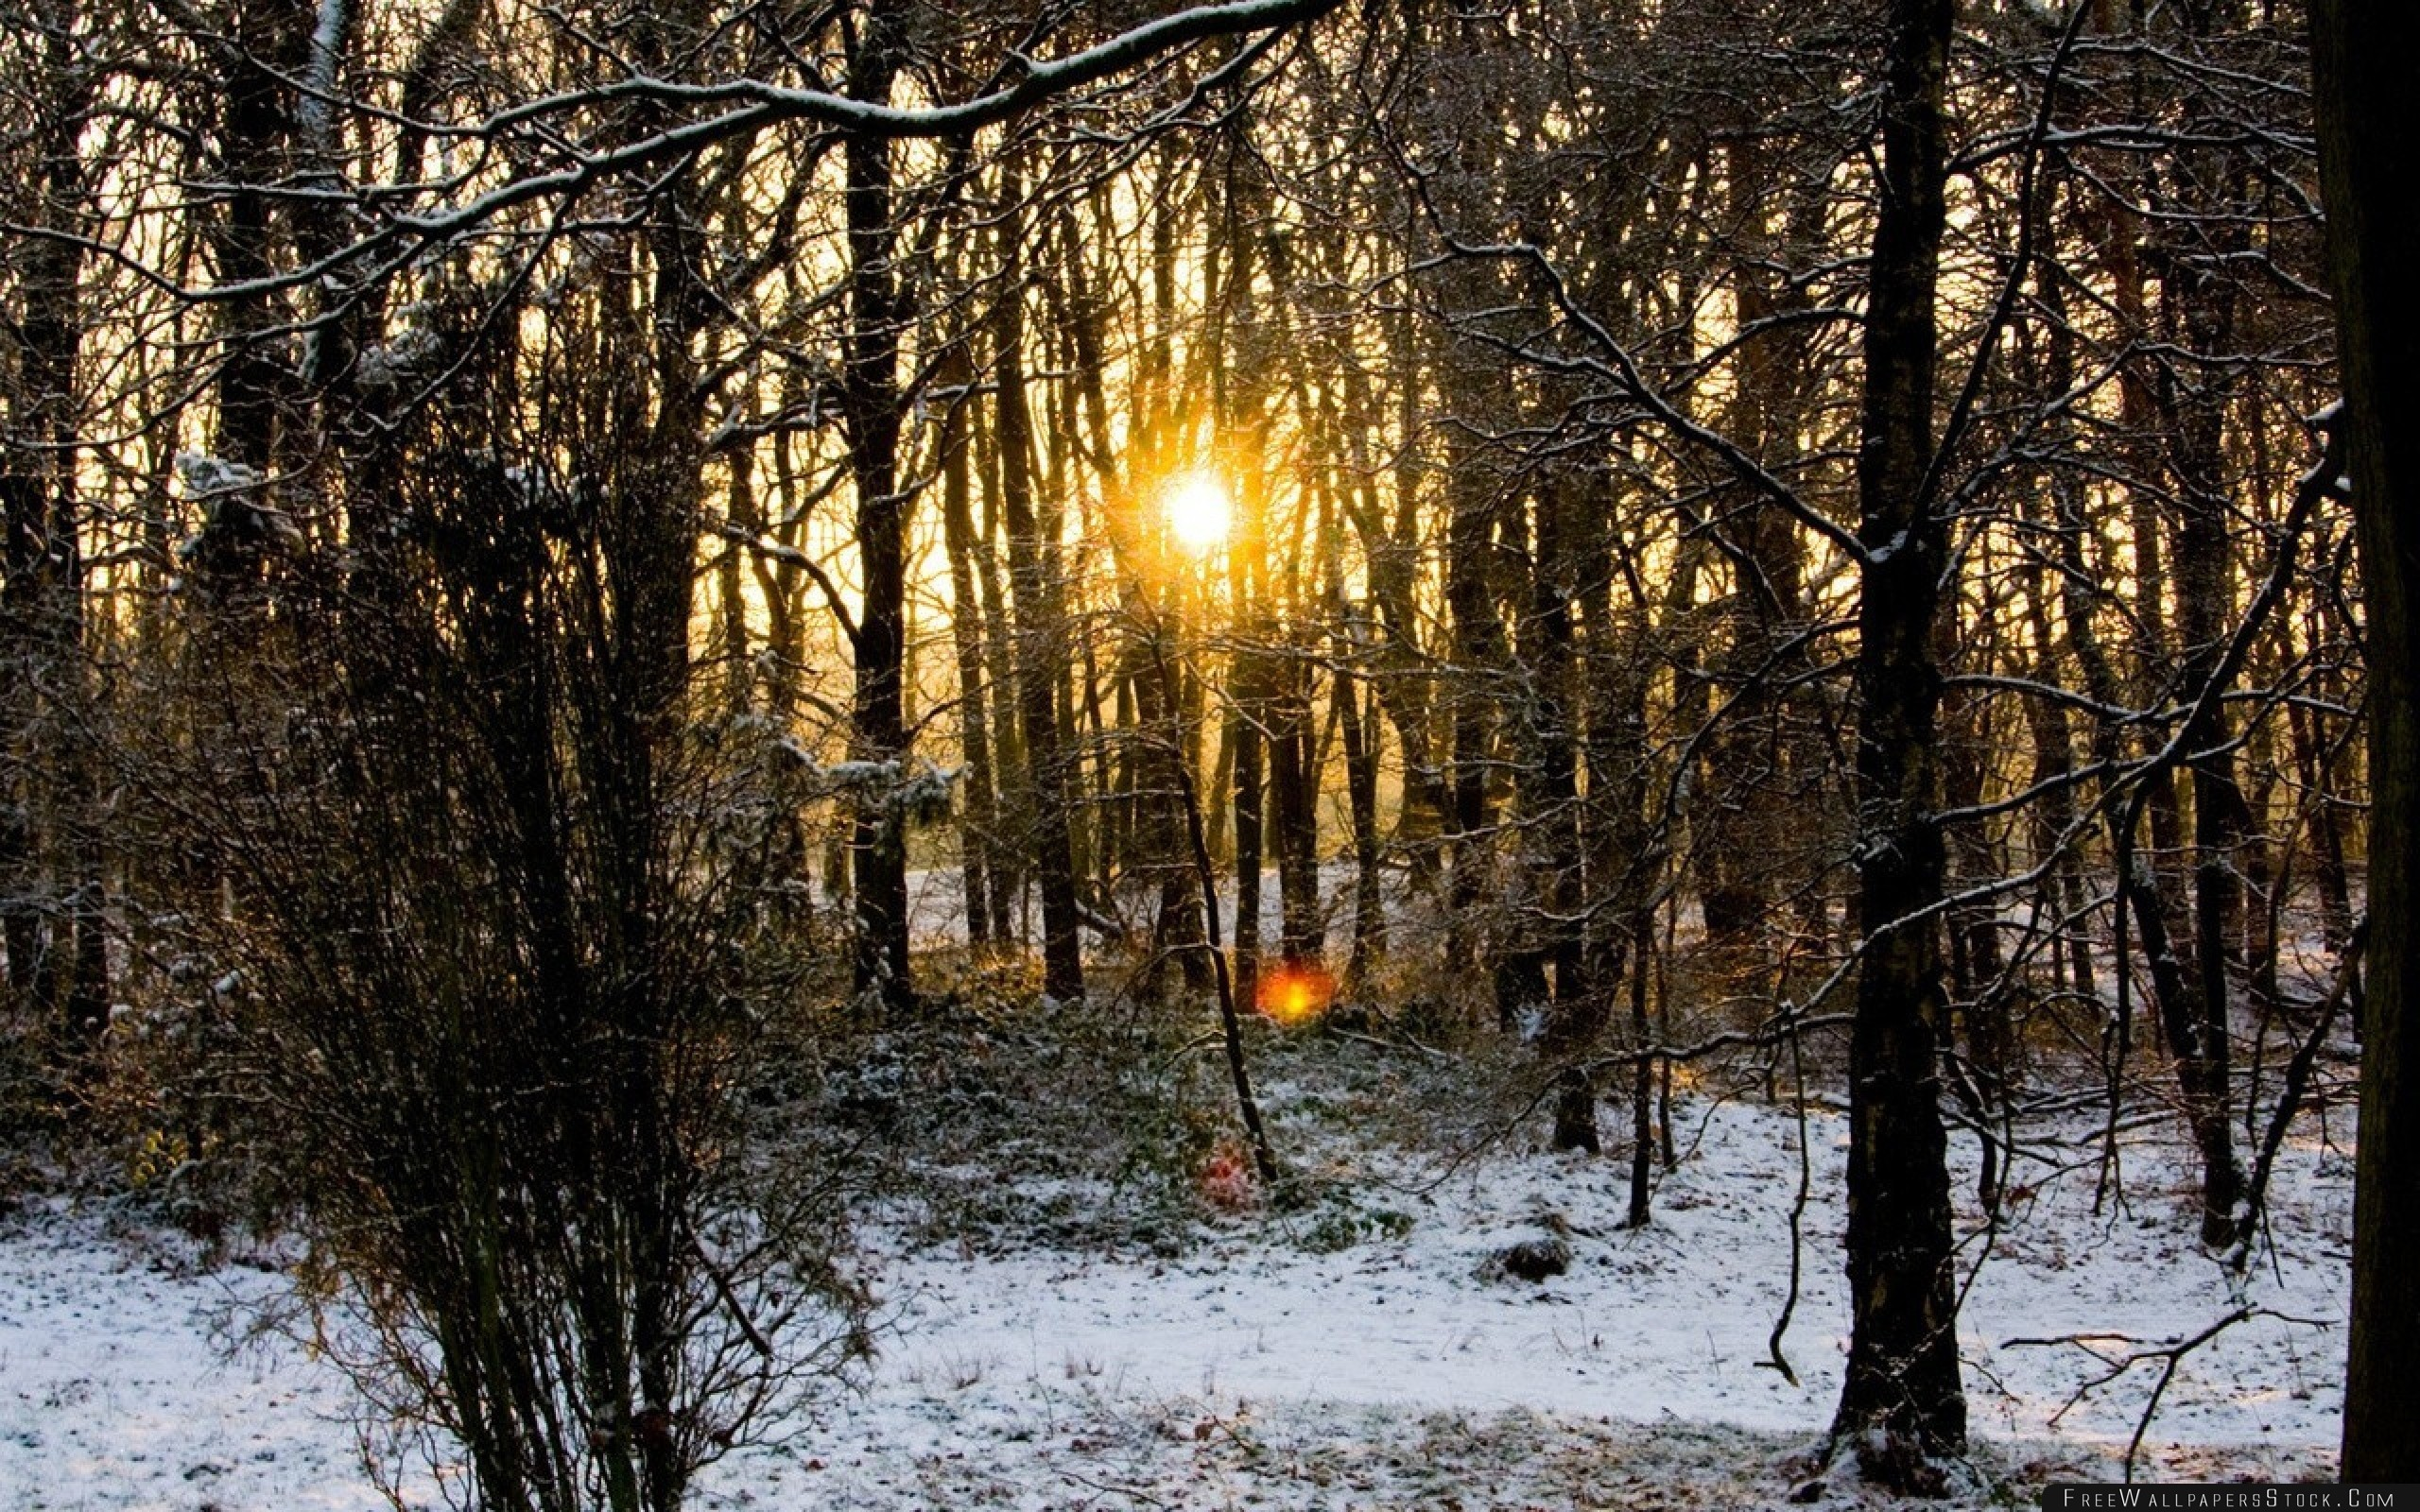 Download Free Wallpaper Wood Trees Branches Autumn Snow Dawn Cold Sun